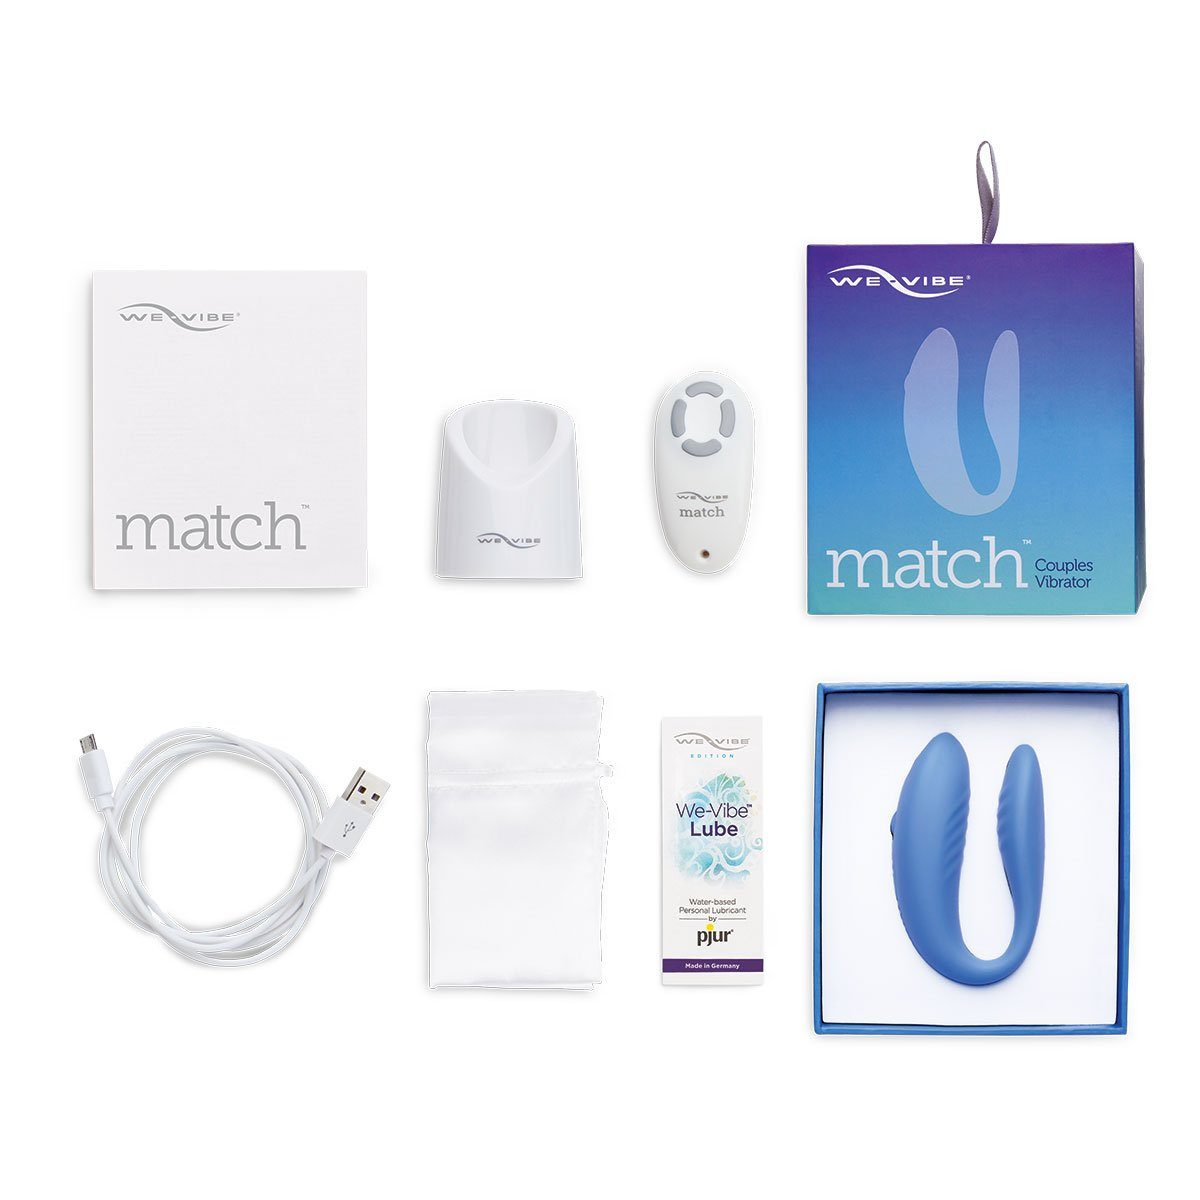 We Vibe Match Couples Vibrator 7  - Beyond Delights